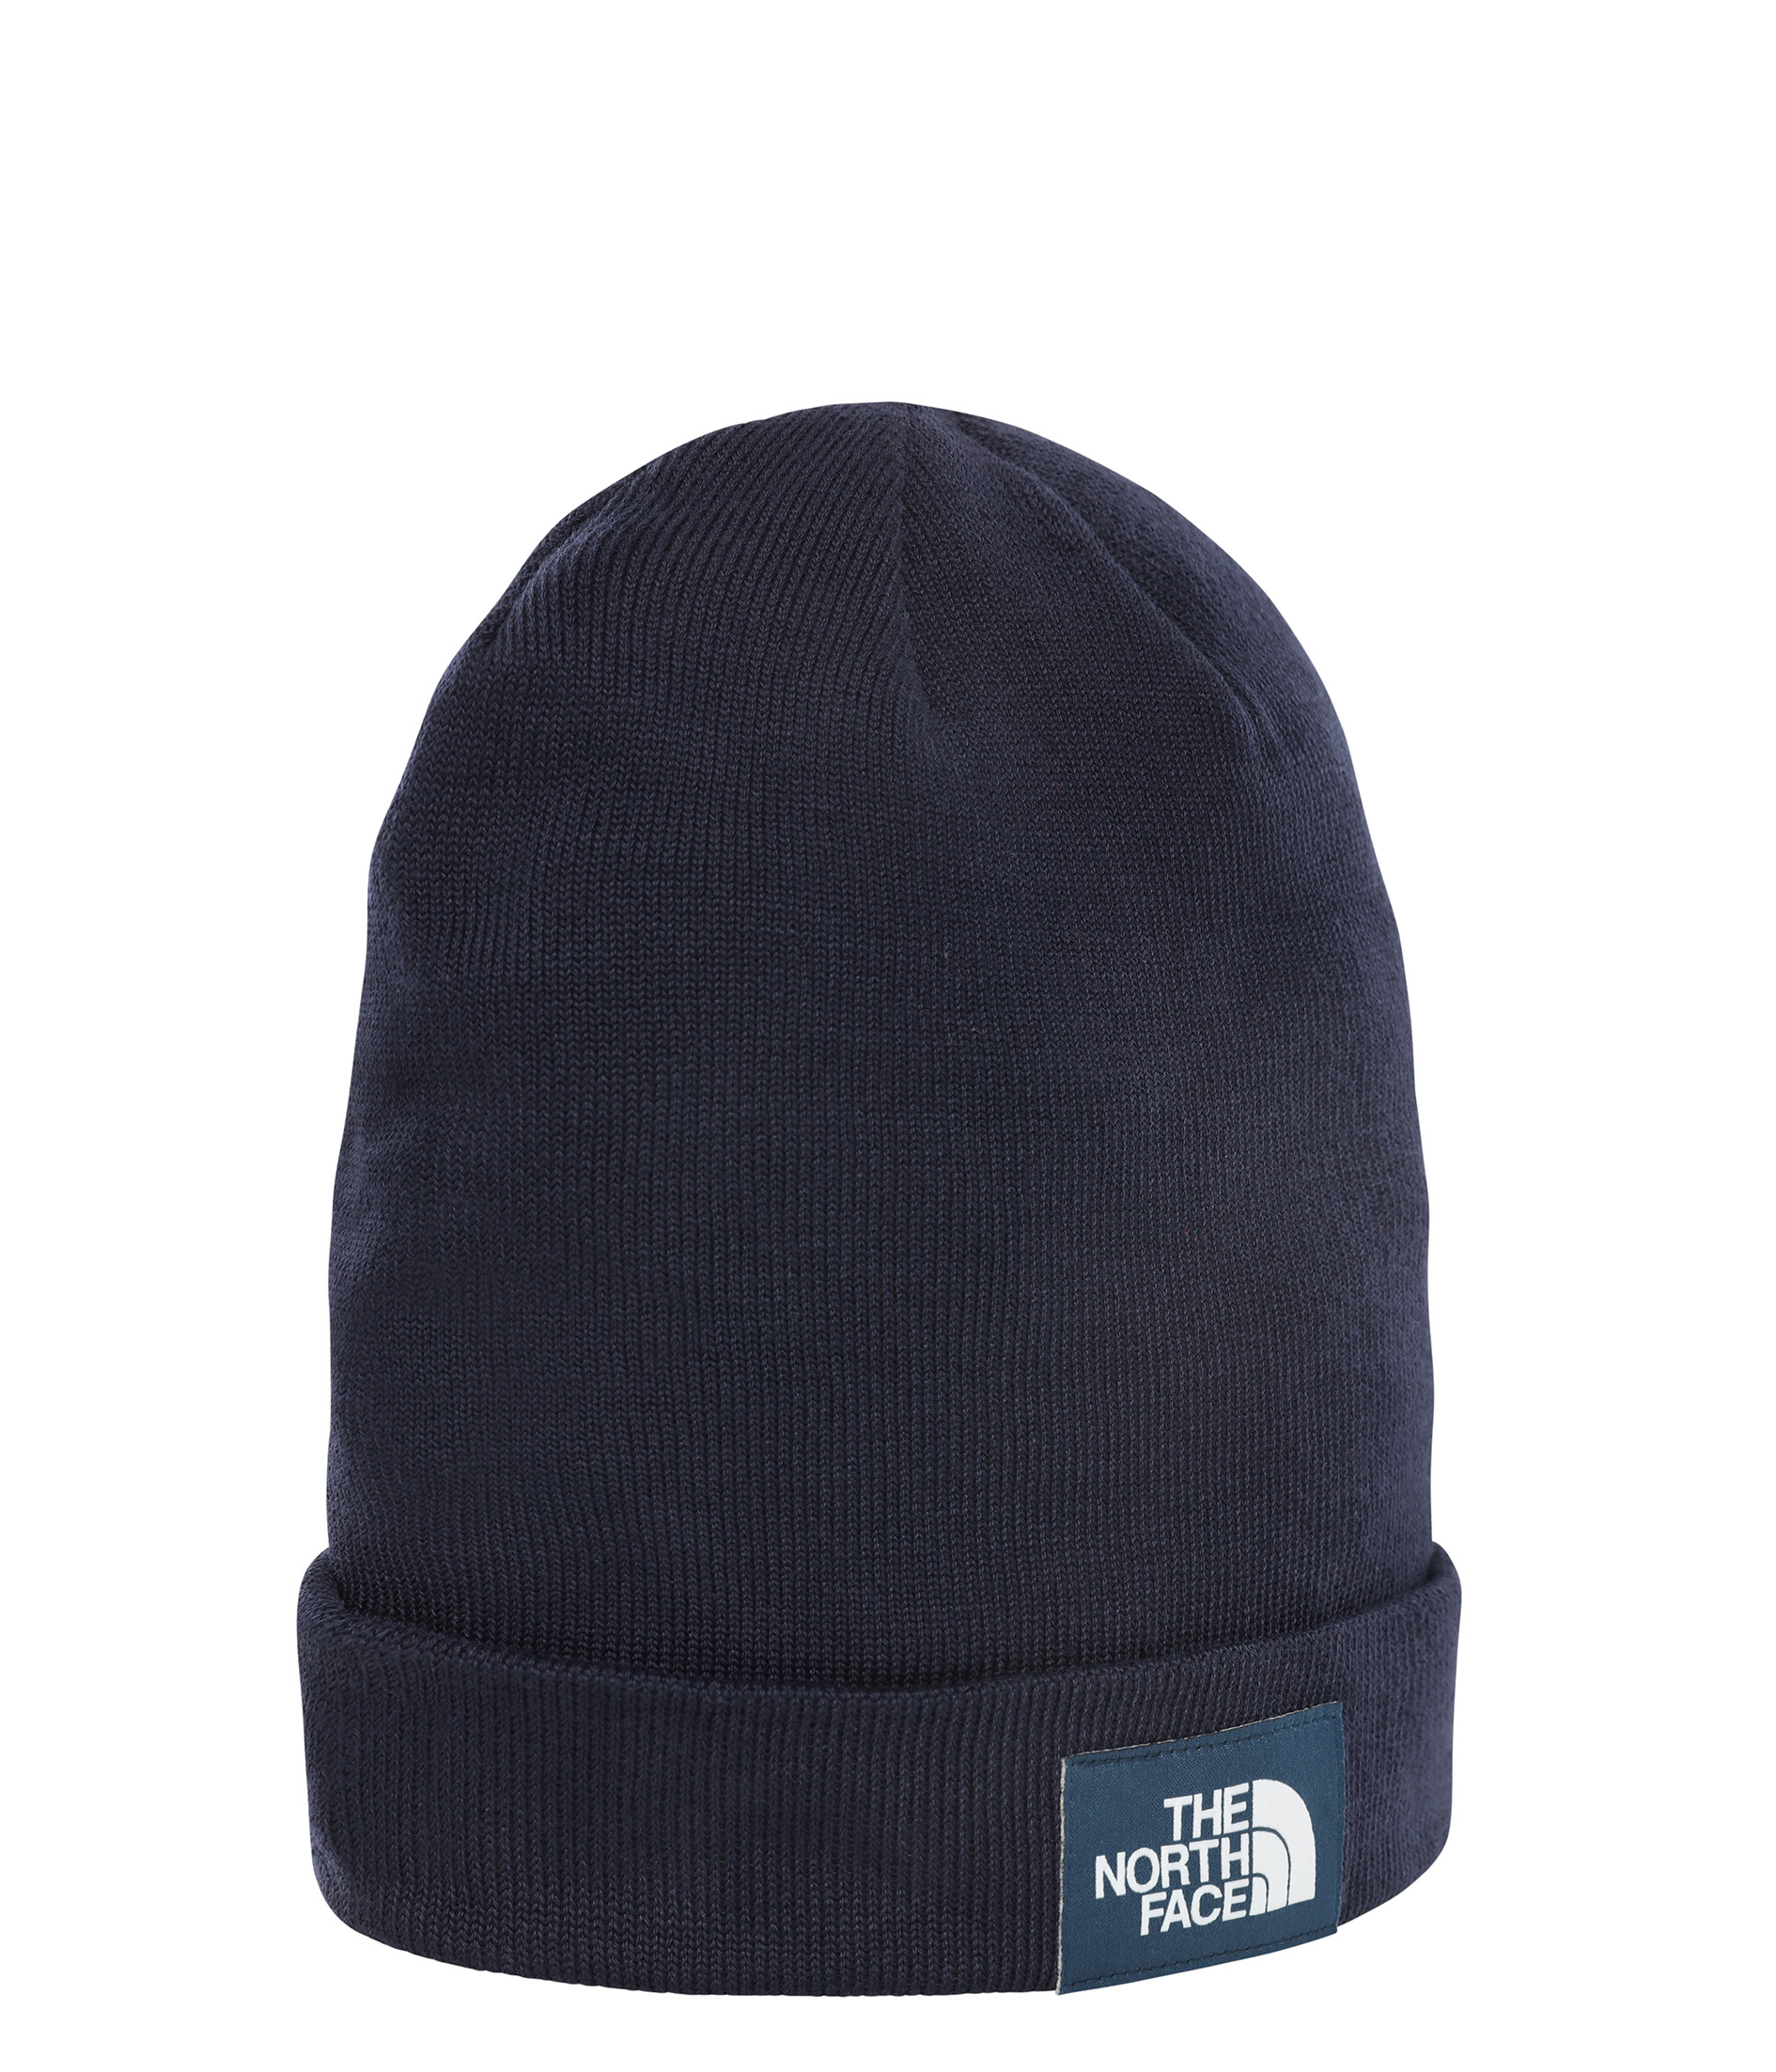 The North Face Dock Worker Recycled Beanie Muts